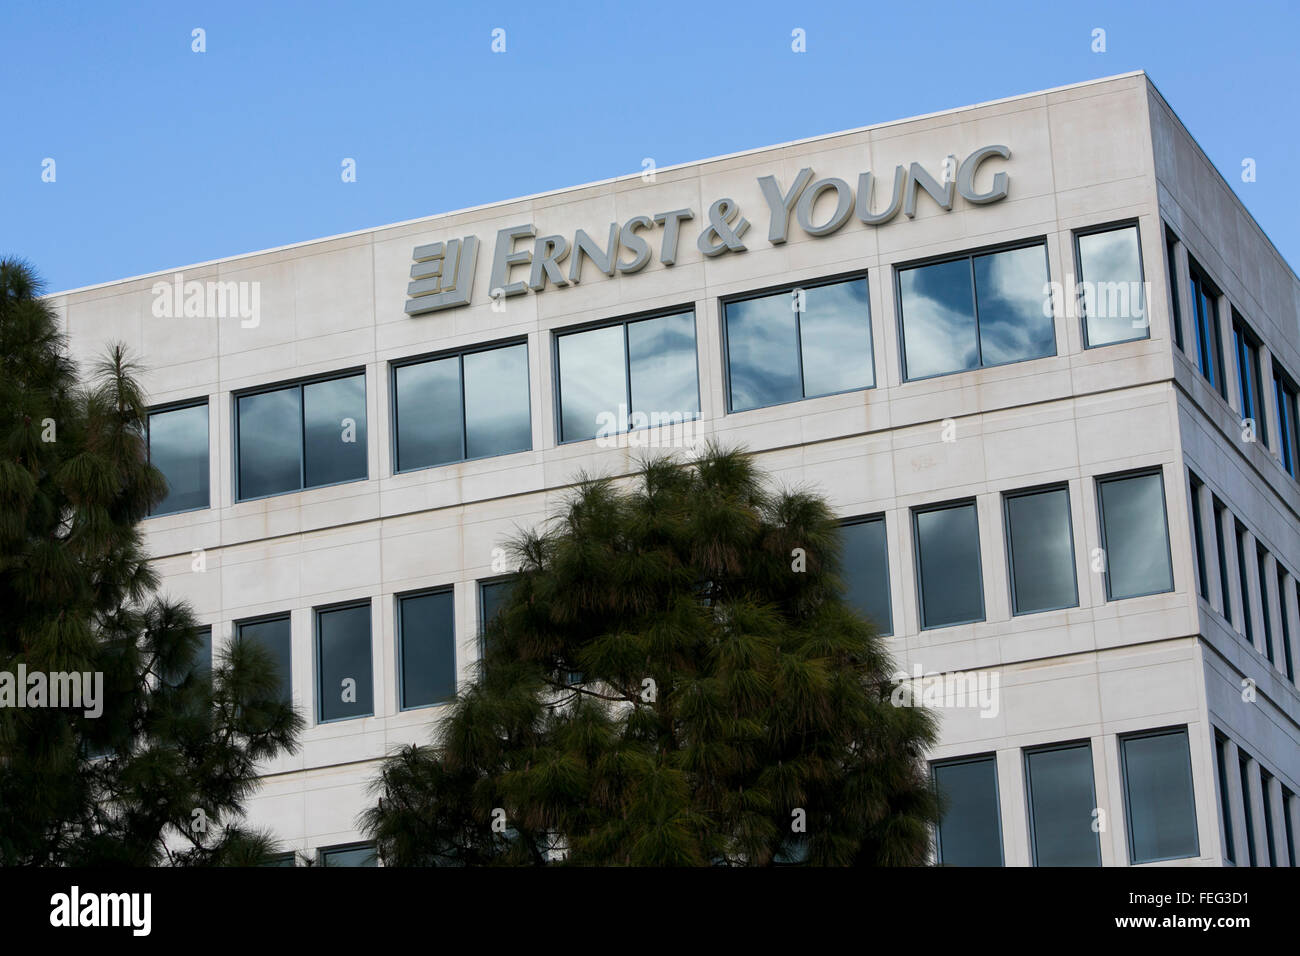 A logo sign outside of a facility occupied by Ernst & Young in Redwood City, California on January 24, 2016. - Stock Image